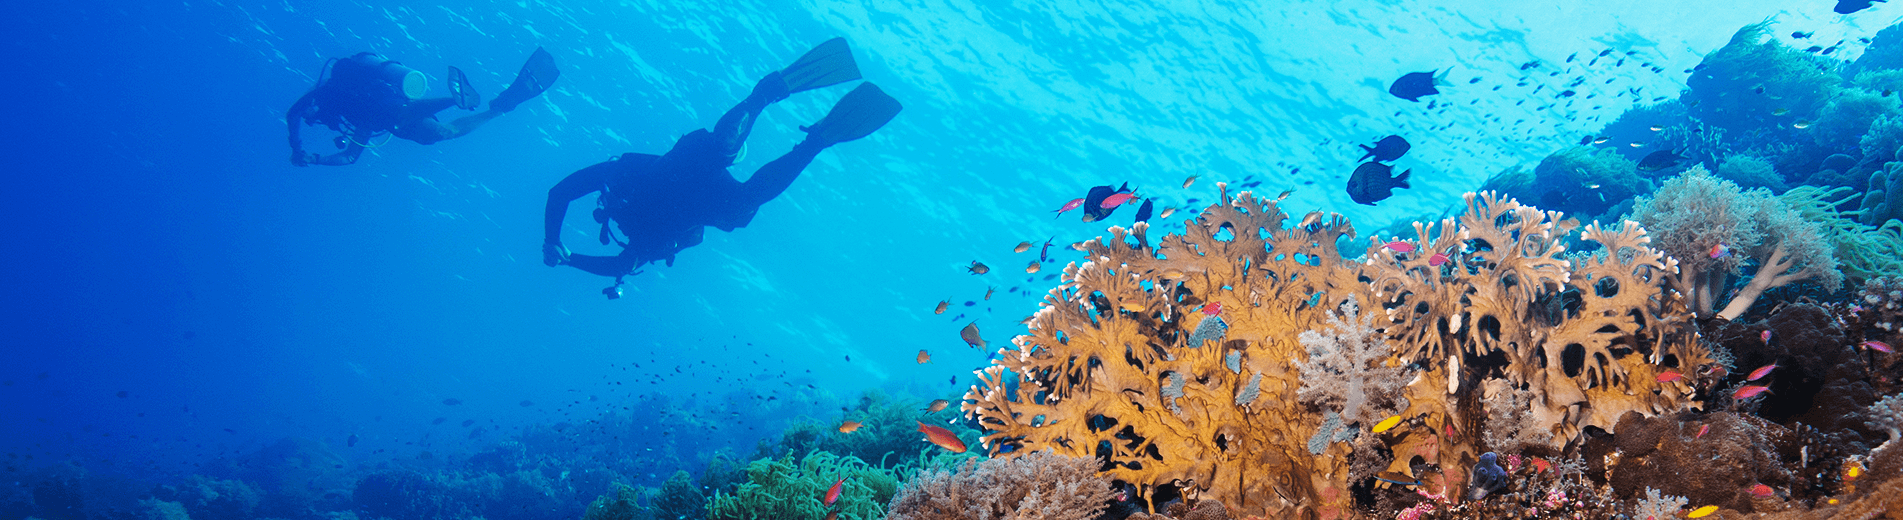 Since the 1980s revealed that the Tubbataha Reefs Natural Park in the Philippines contains no less than 600 fish species, 360 coral species, 11 shark species, 13 dolphin and whale species, and 100 bird species.